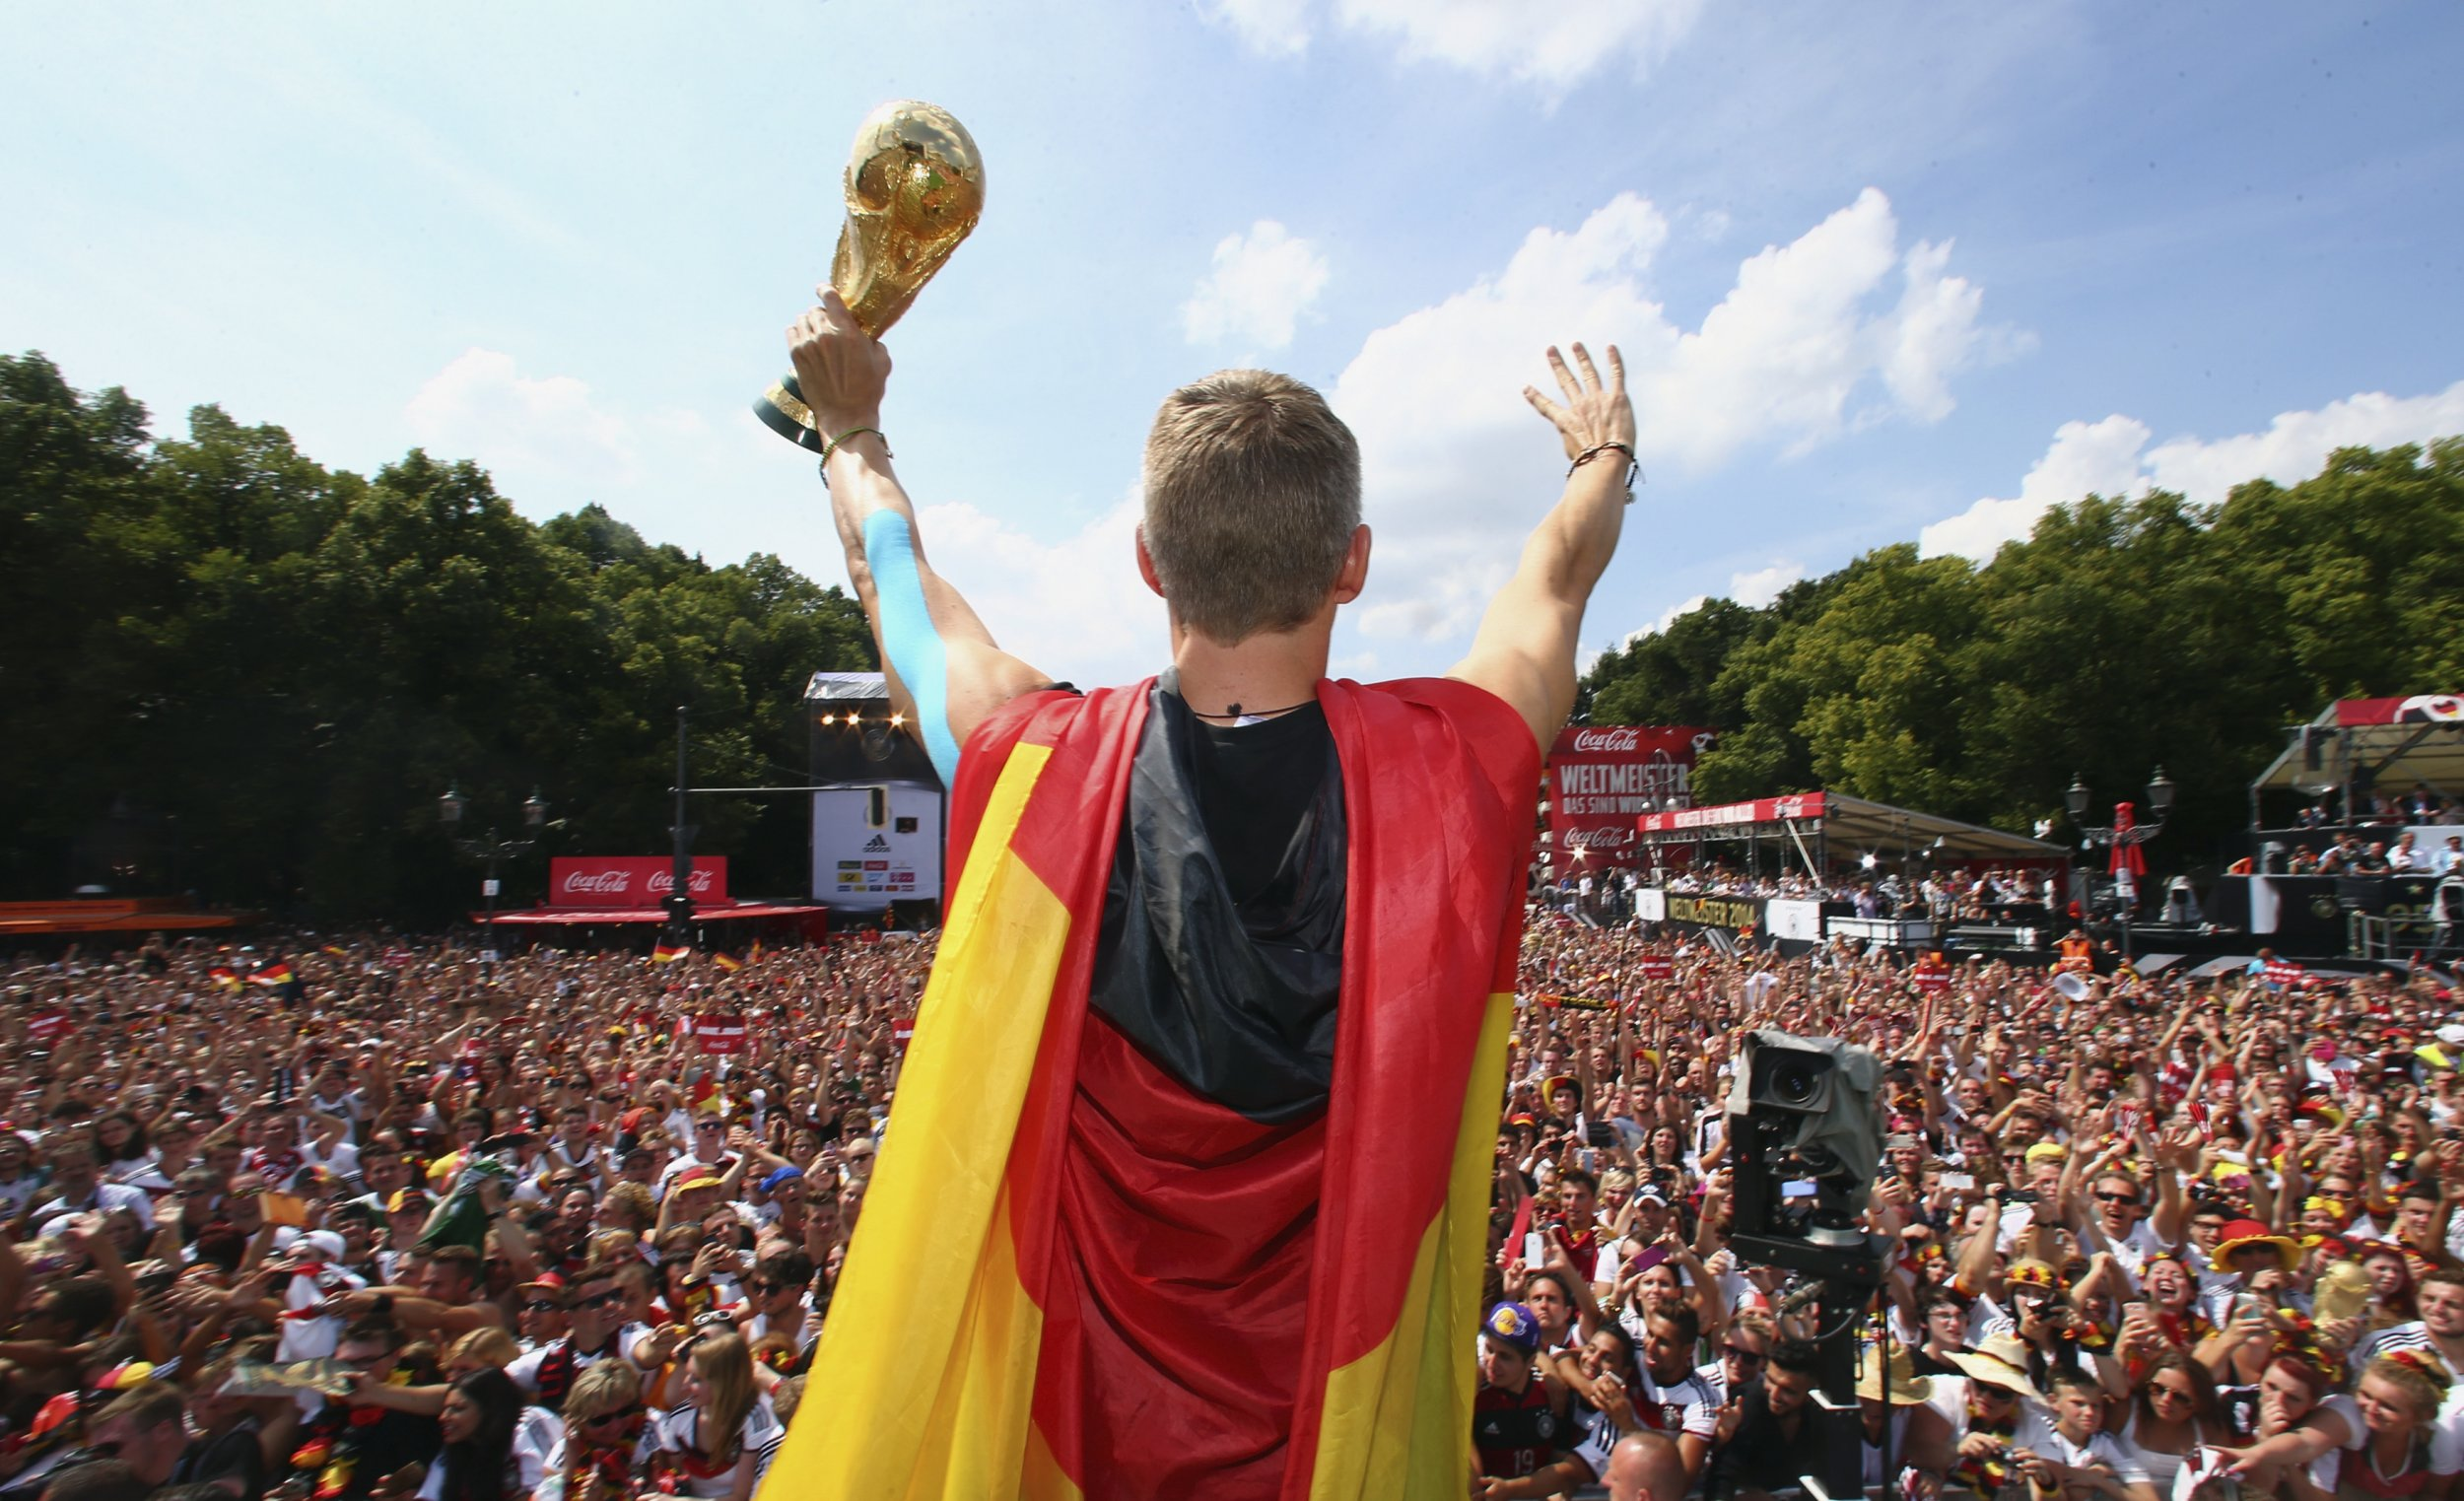 Bastian Schweinsteiger holding the World Cup